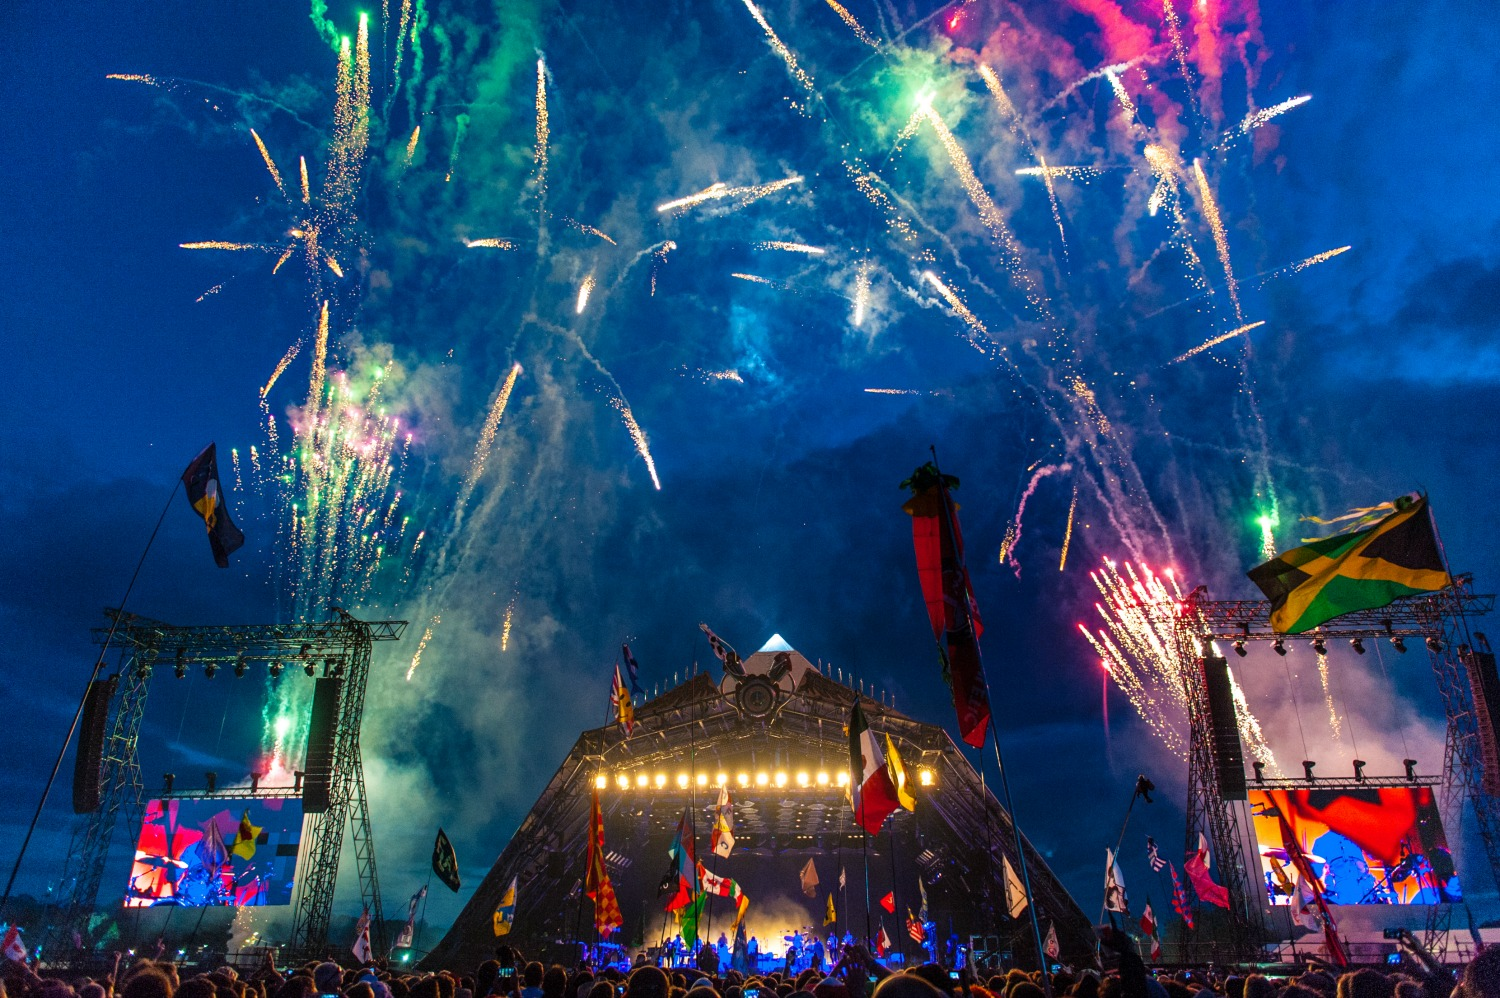 Glastonbury Festival | Courtesy Glastonbury Festival/Photo by Andrew Allcock